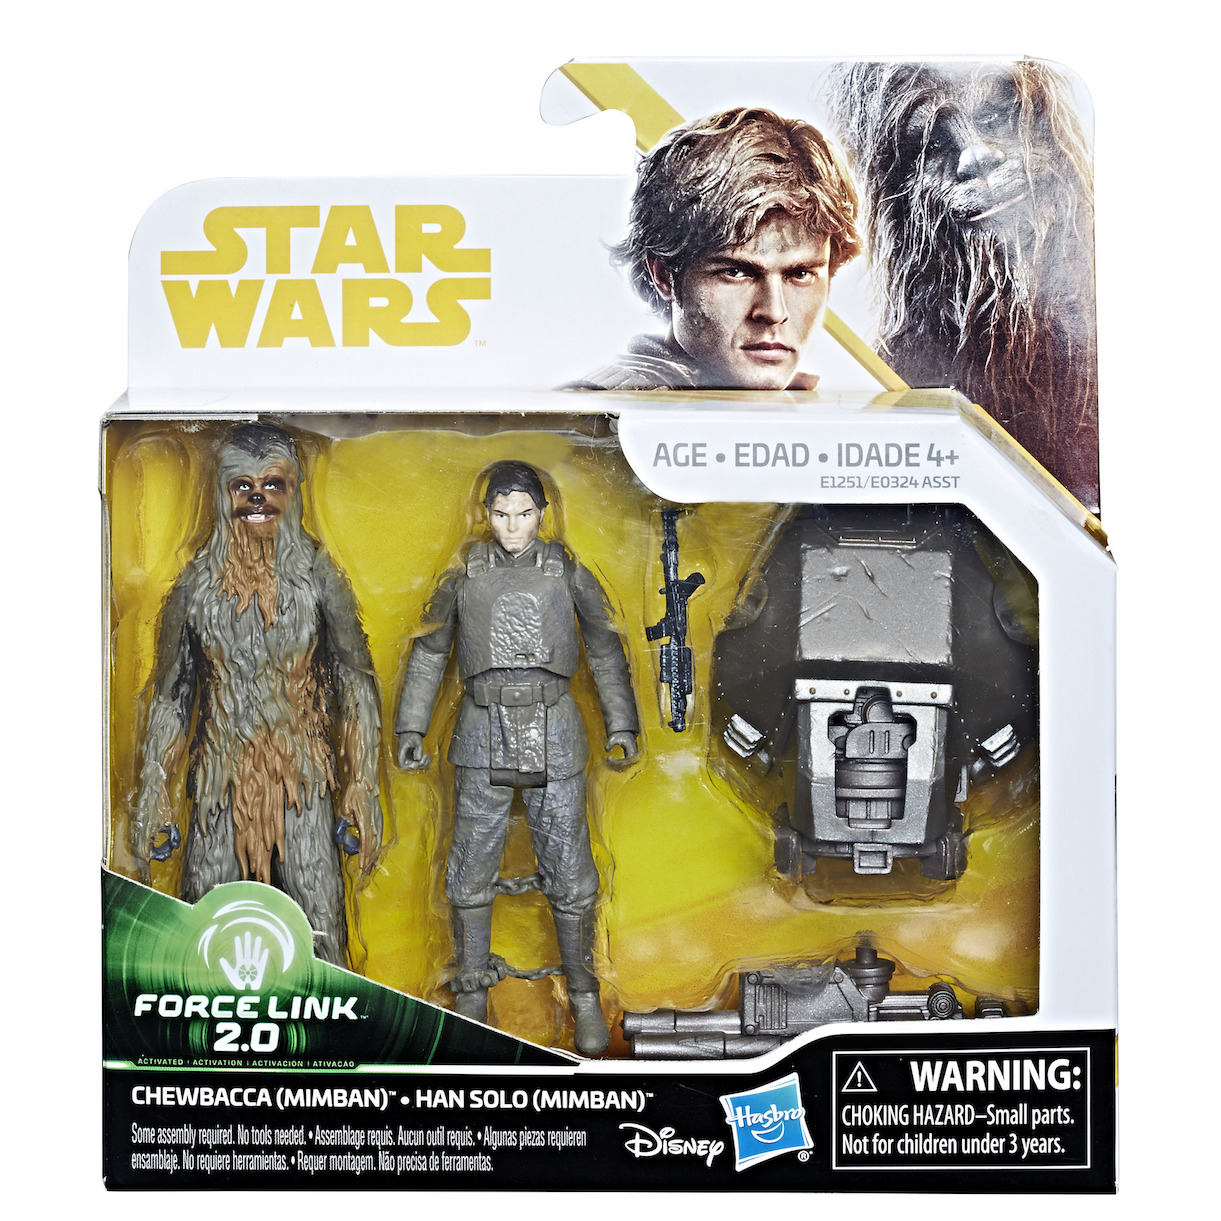 Solo: ASWS Force Link 2.0 Han Solo and Chewbacca (Mimban) Figure Set 1